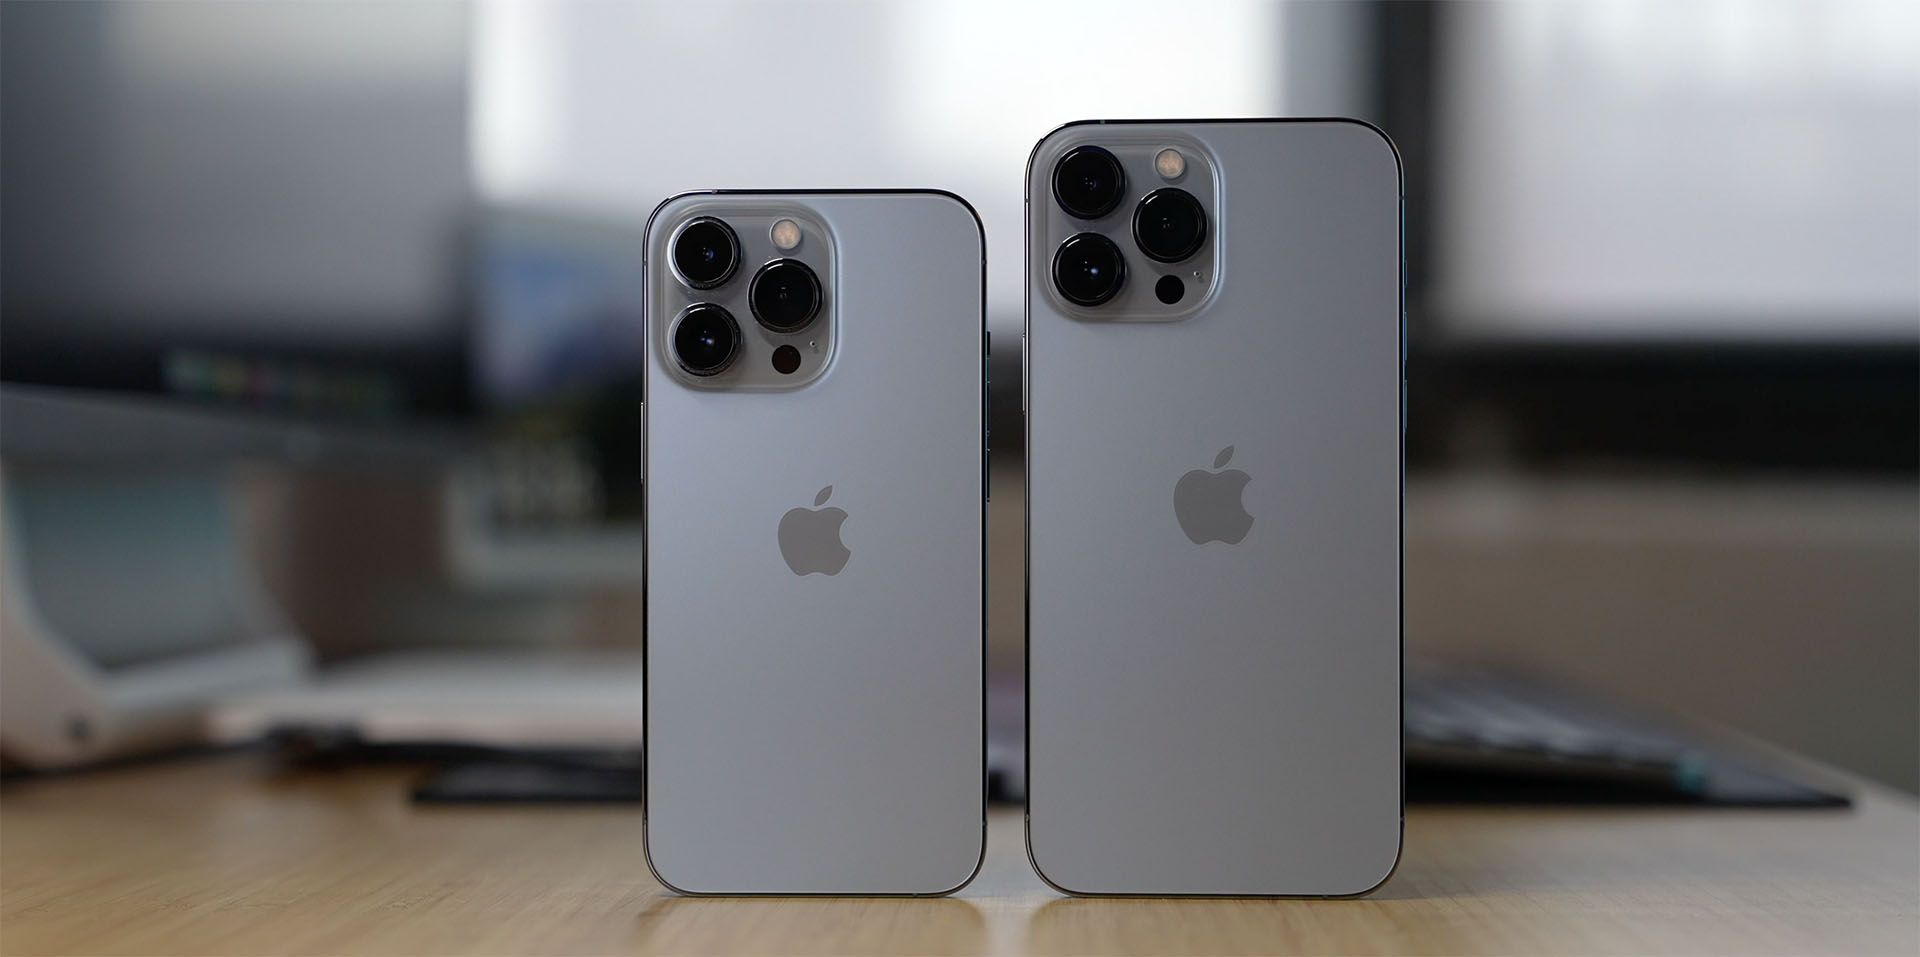 iPhones on the table